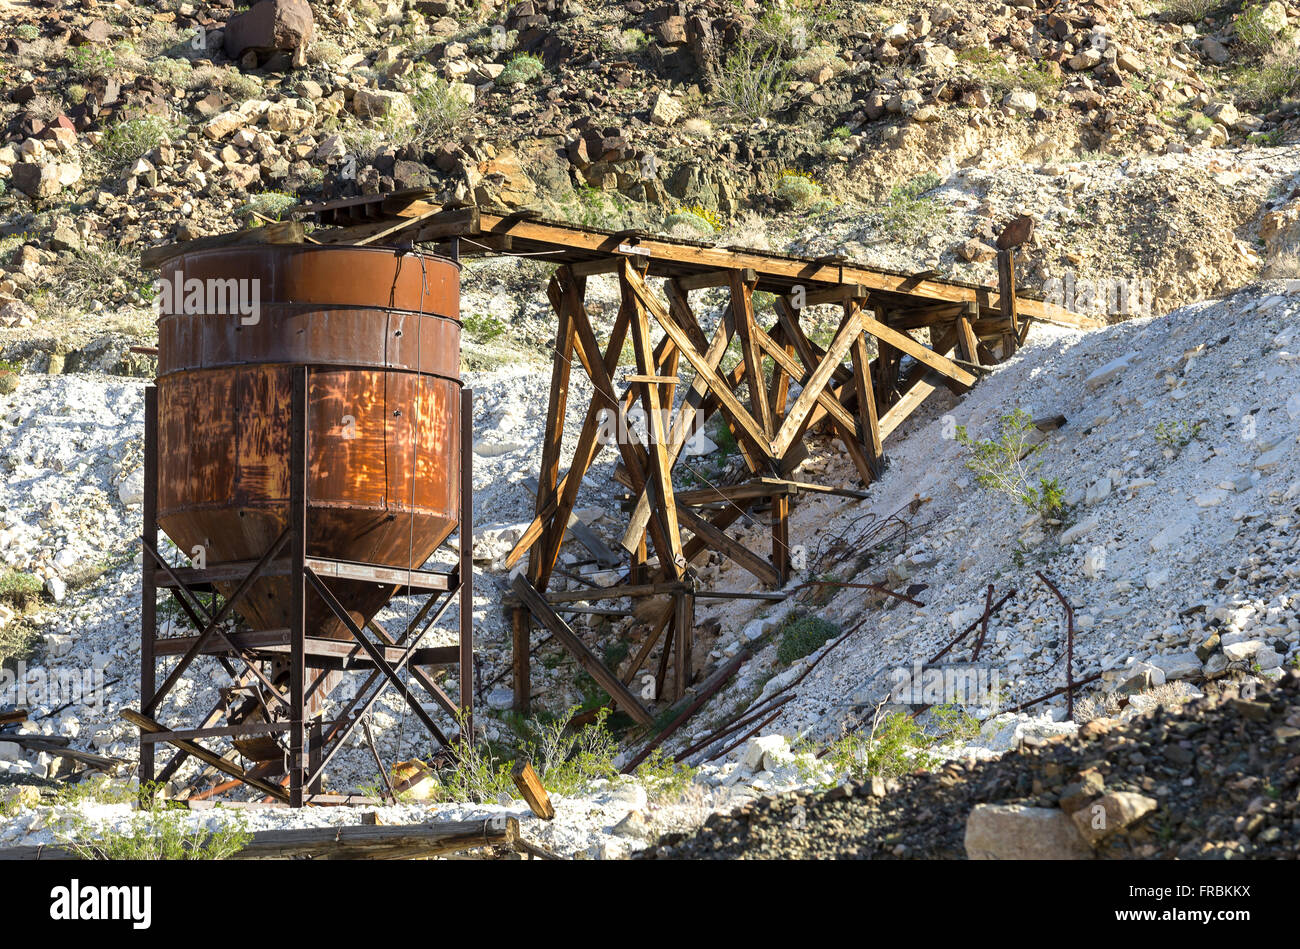 Grantham Talc Mine site in Warm Springs Canyon, Death Valley National Park. - Stock Image